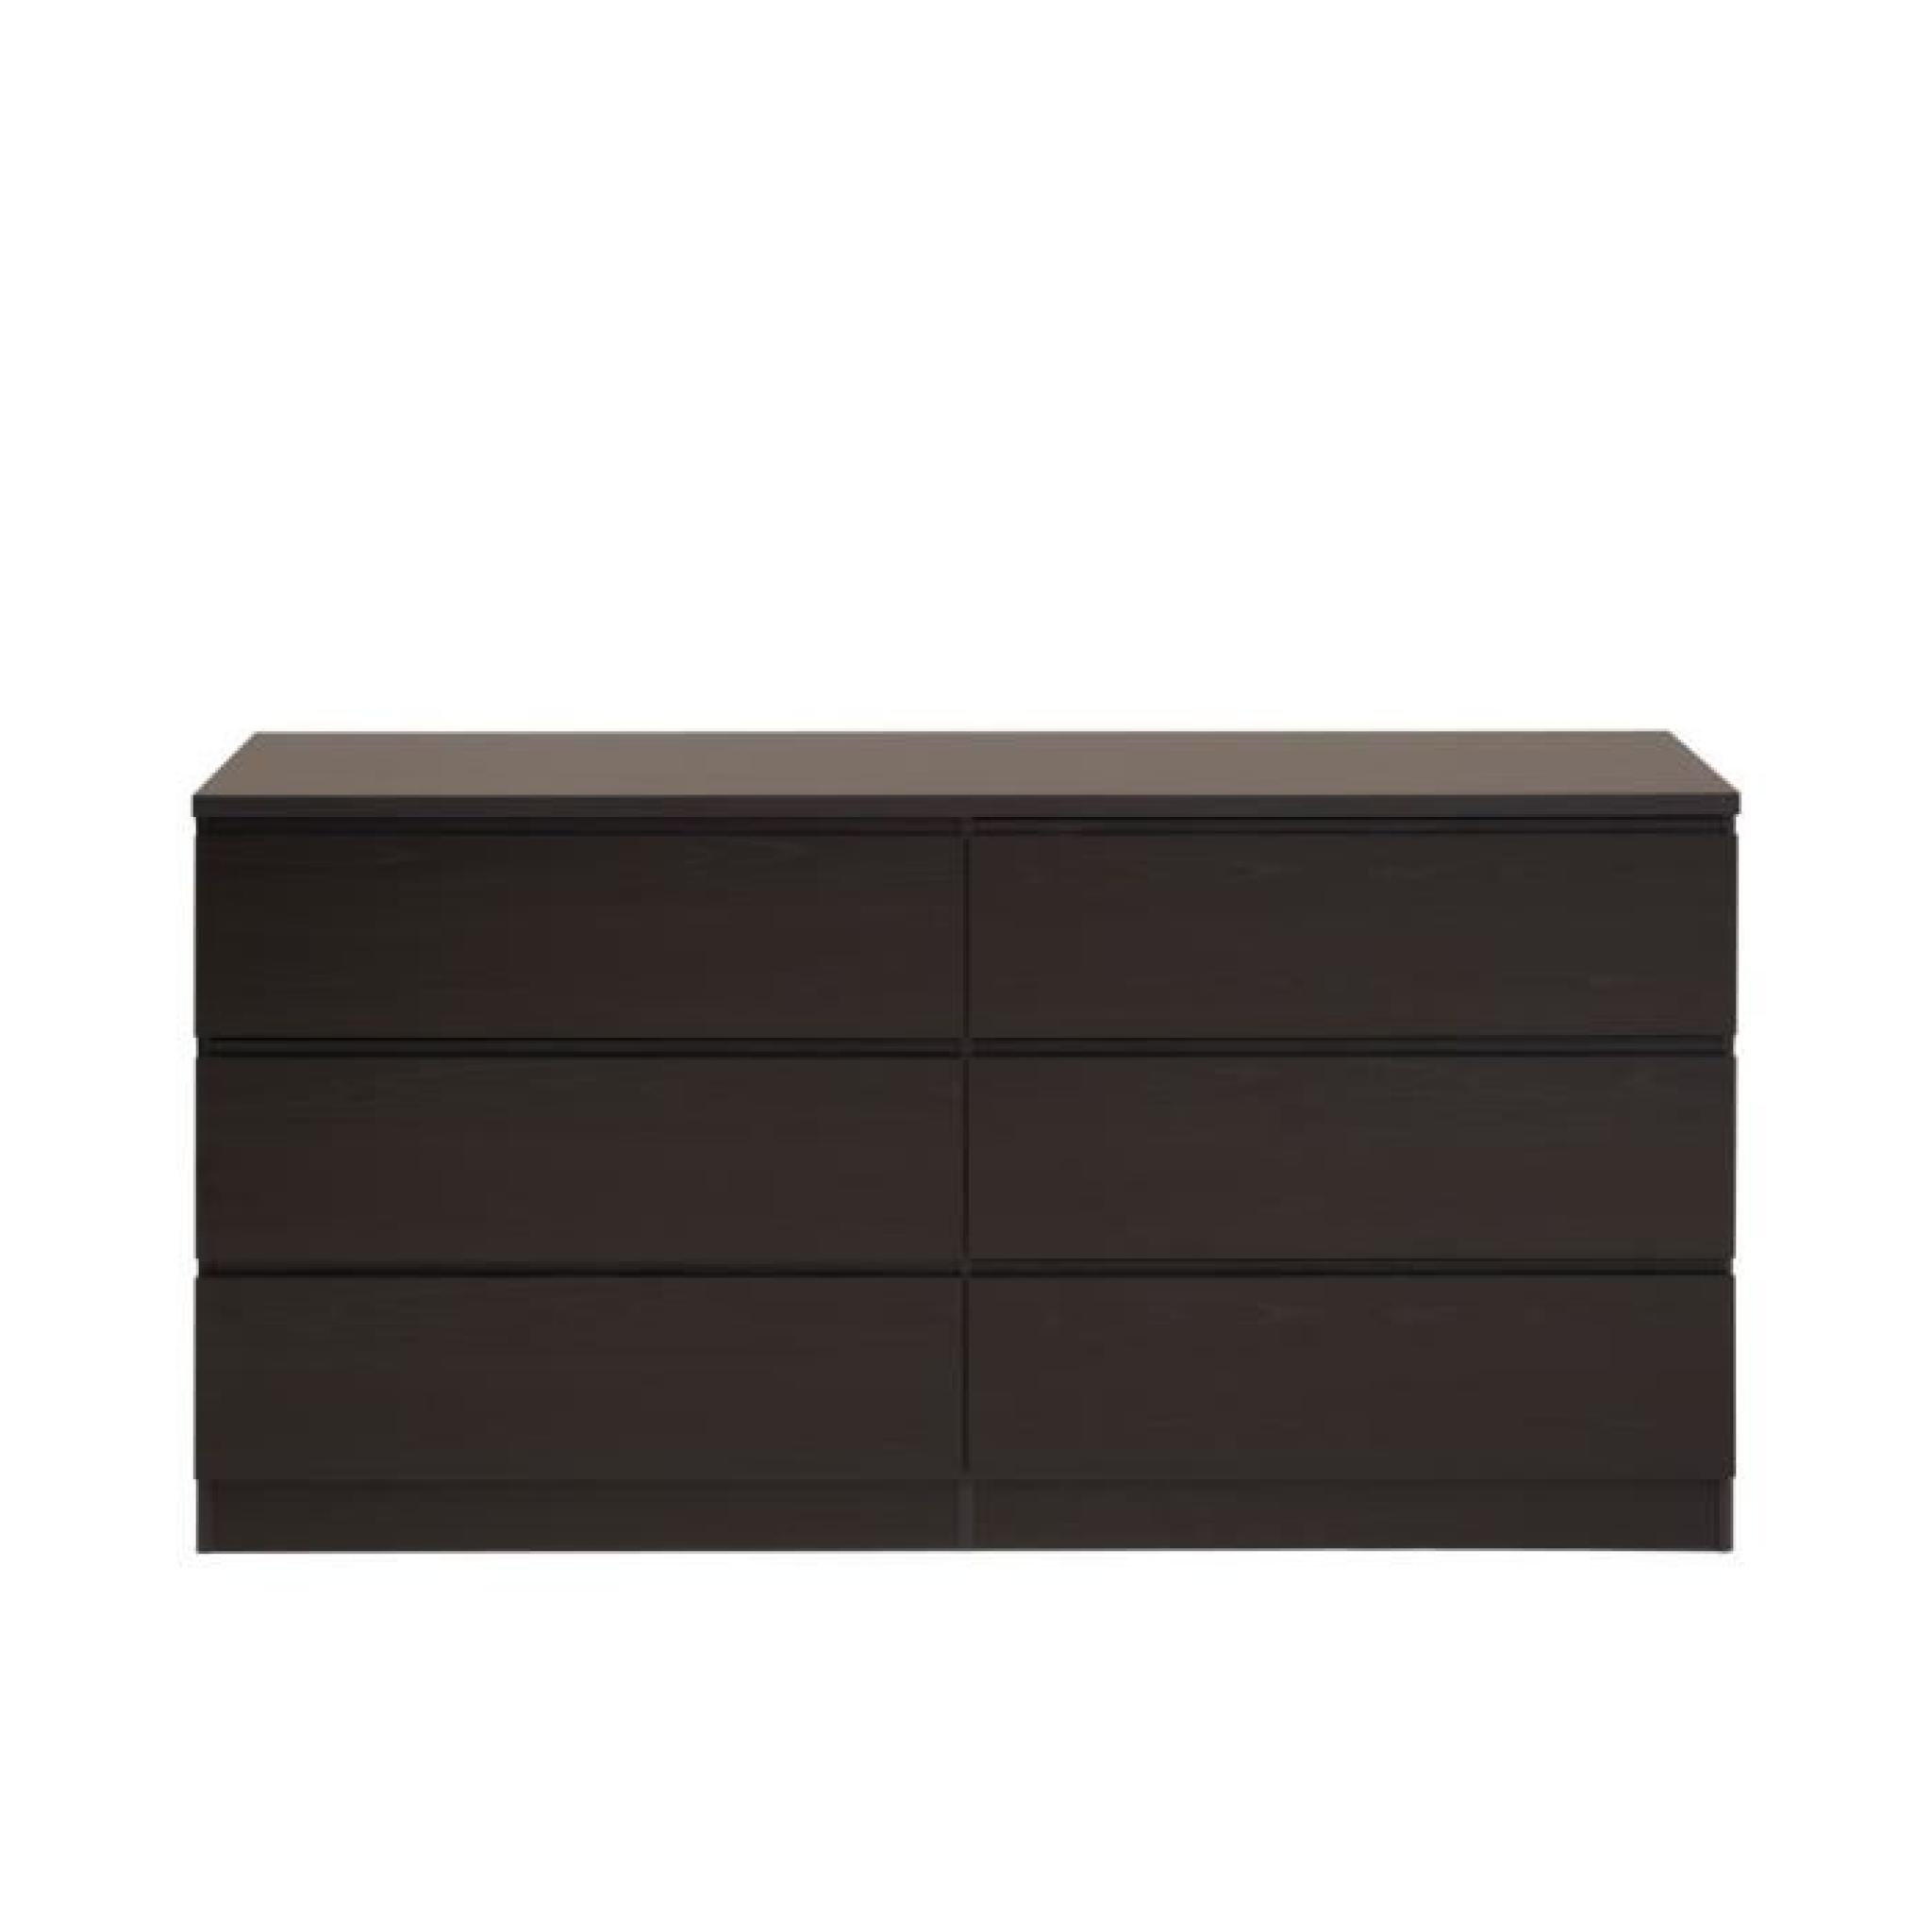 commode armance 6 tiroirs coloris weng achat vente. Black Bedroom Furniture Sets. Home Design Ideas